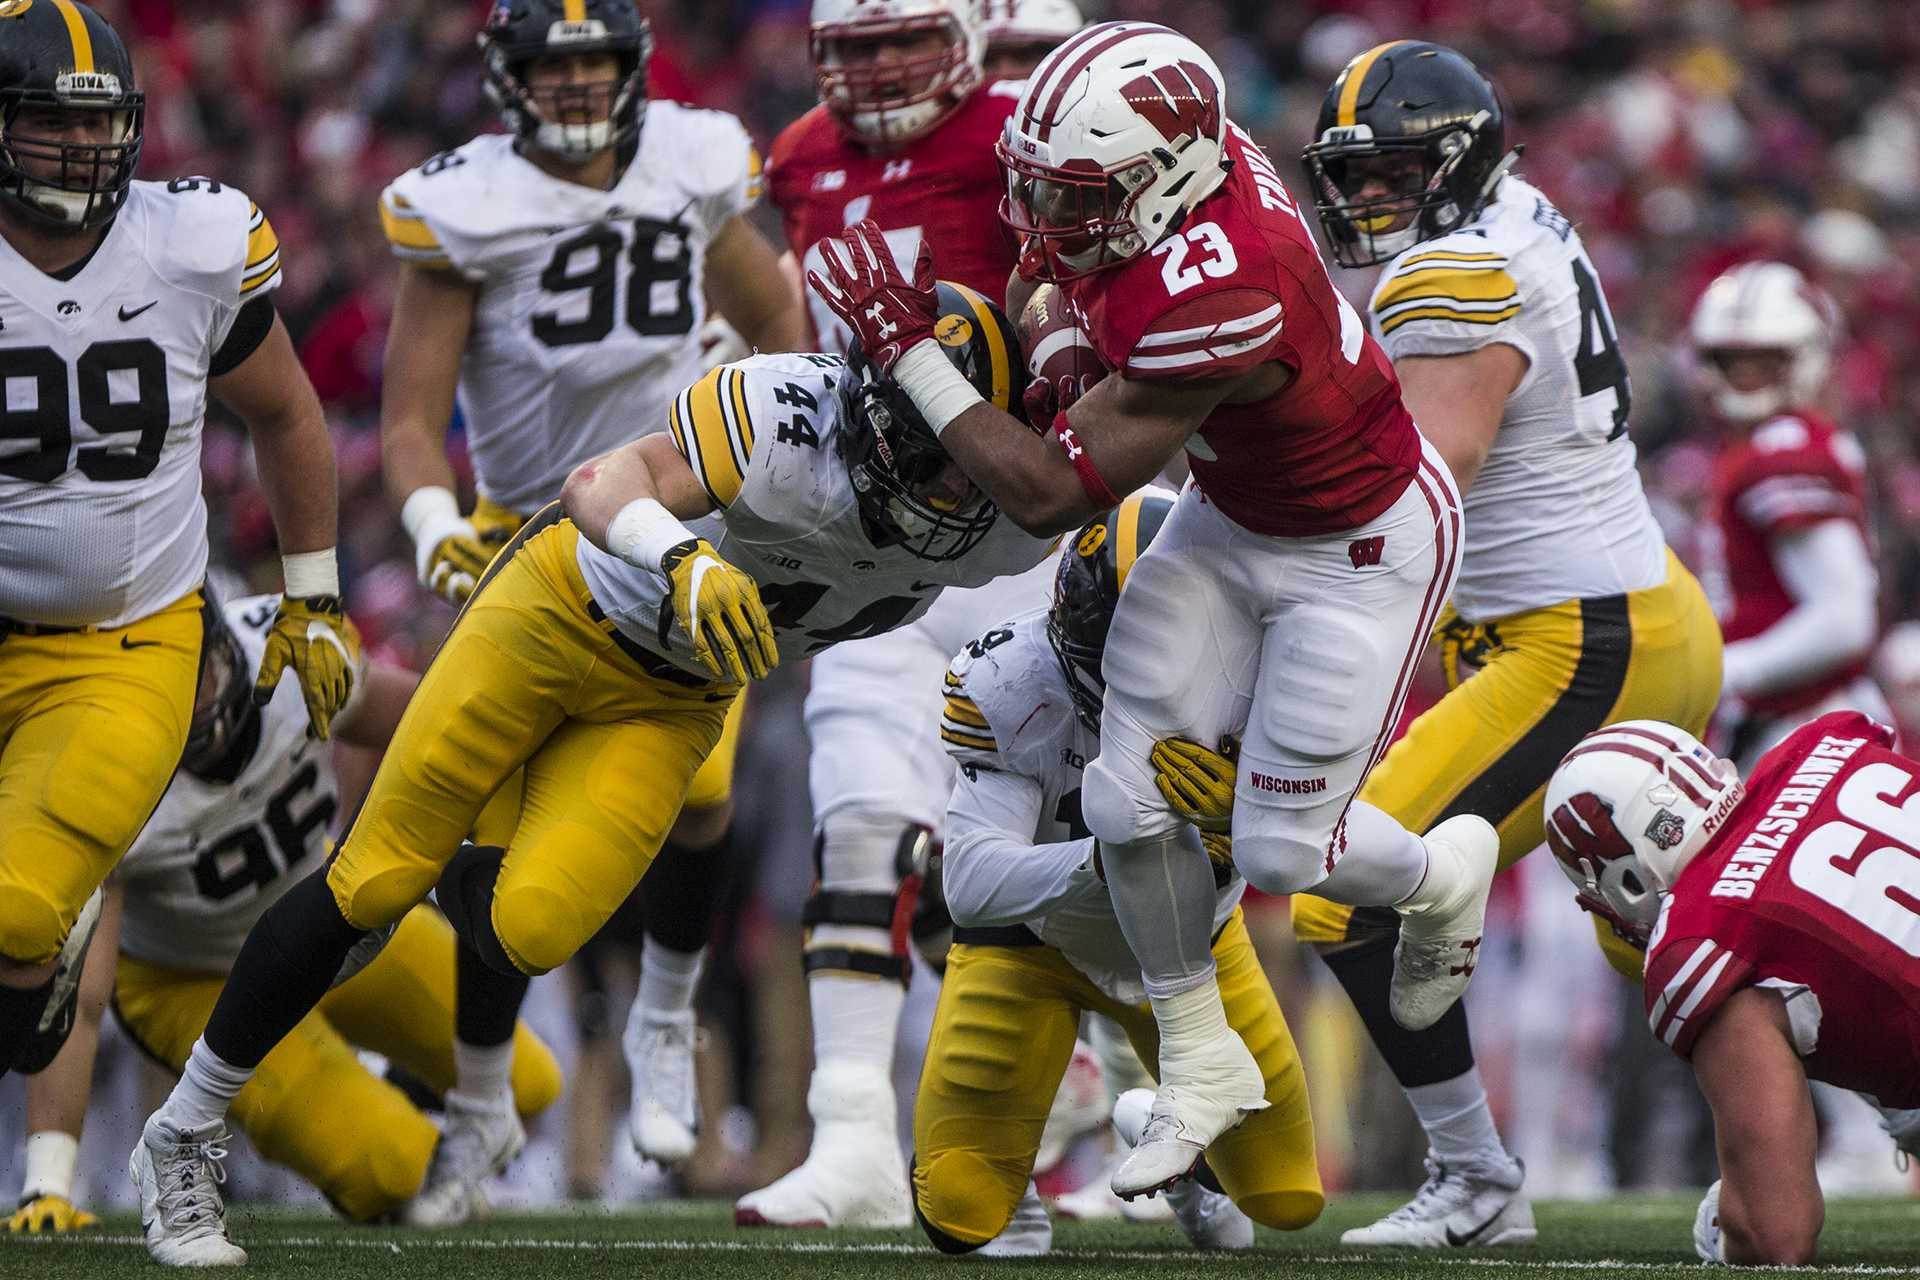 Wisconsin running back Jonathan Taylor (23) is tackled by Iowa linebacker Ben Niemann (44) just before the goal line during the game between Iowa and Wisconsin at Camp Randall Stadium on Saturday, Nov. 11, 2017. The Hawkeyes fell to the Badgers 38-14. (Ben Smith/The Daily Iowan)